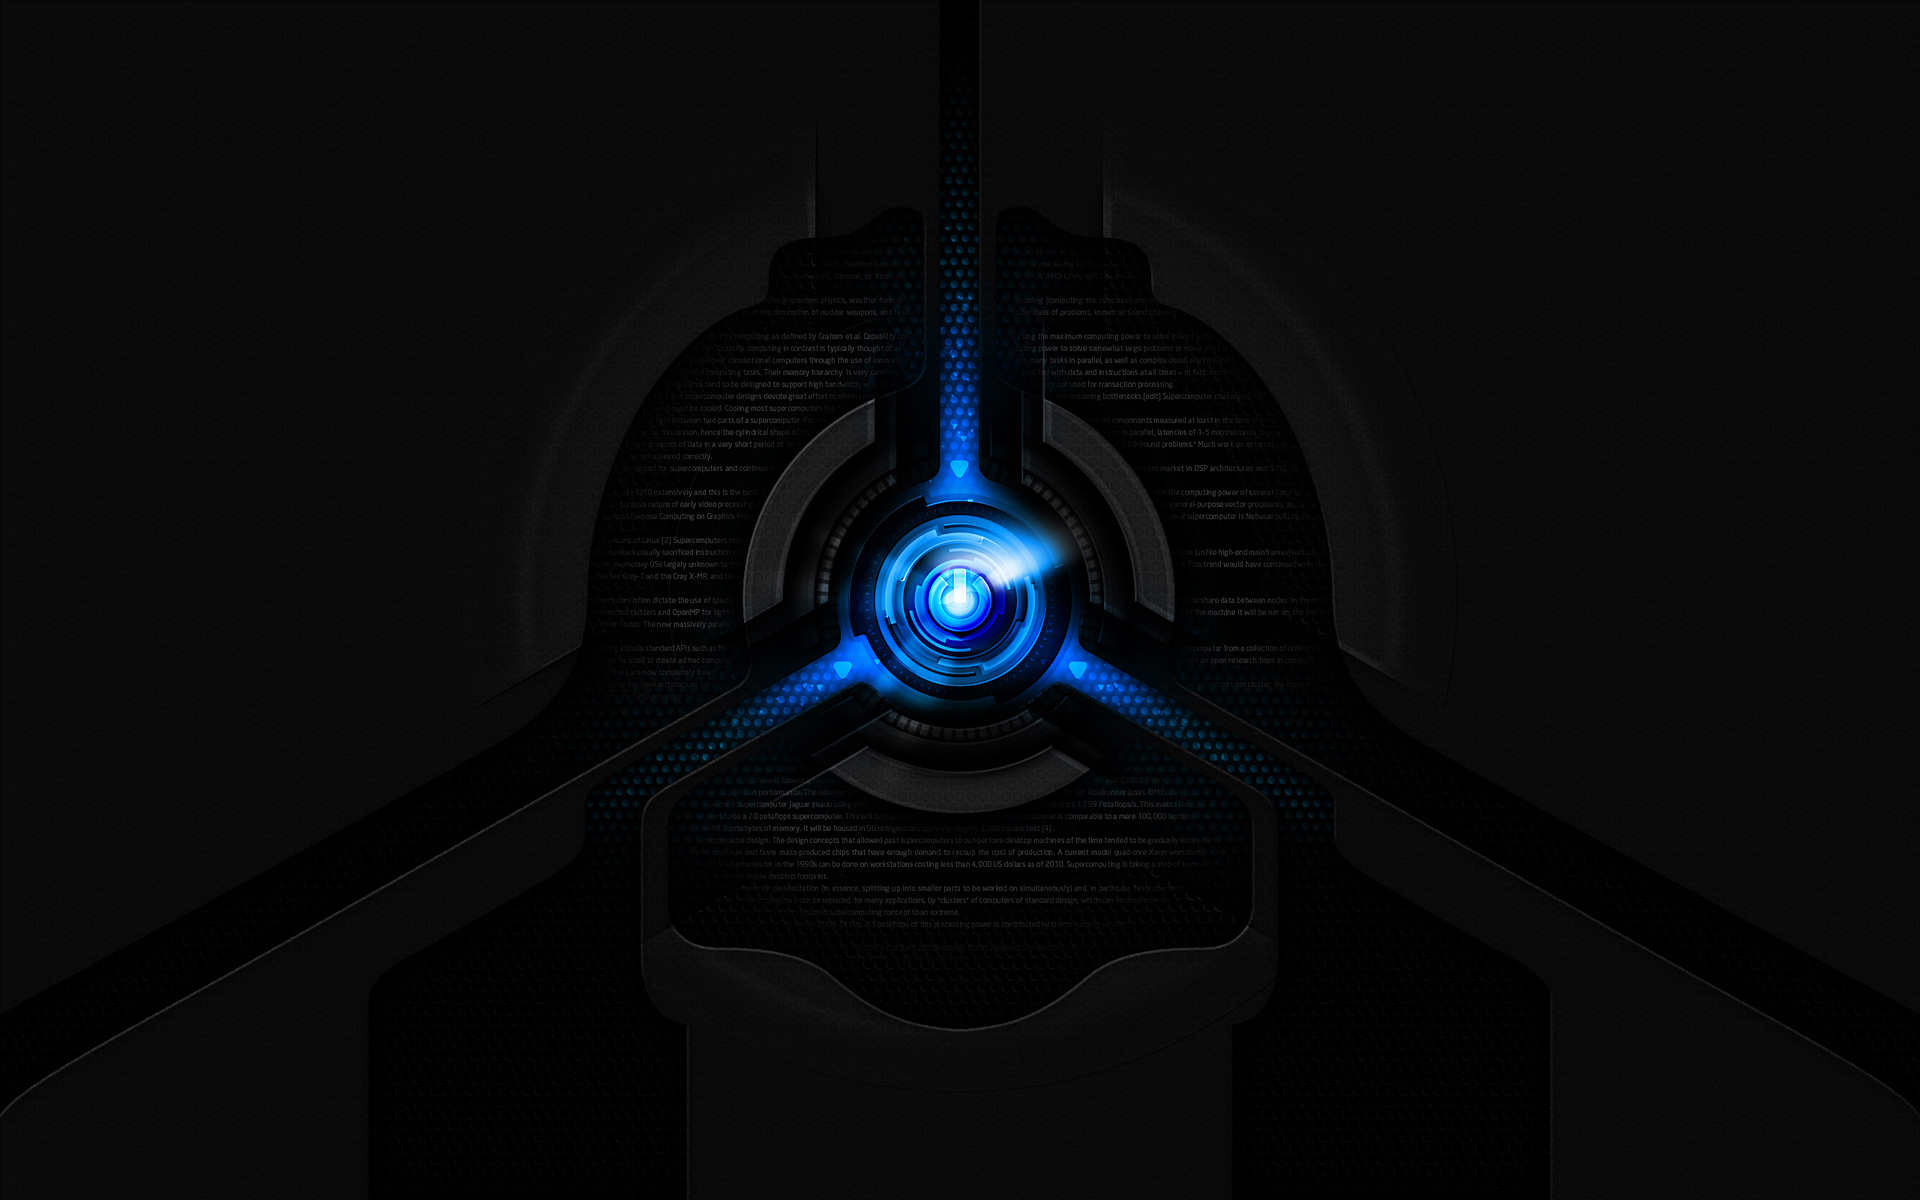 Black And Blue Logo Wallpaper HD 29919 Wallpaper with 1920x1200 1920x1200